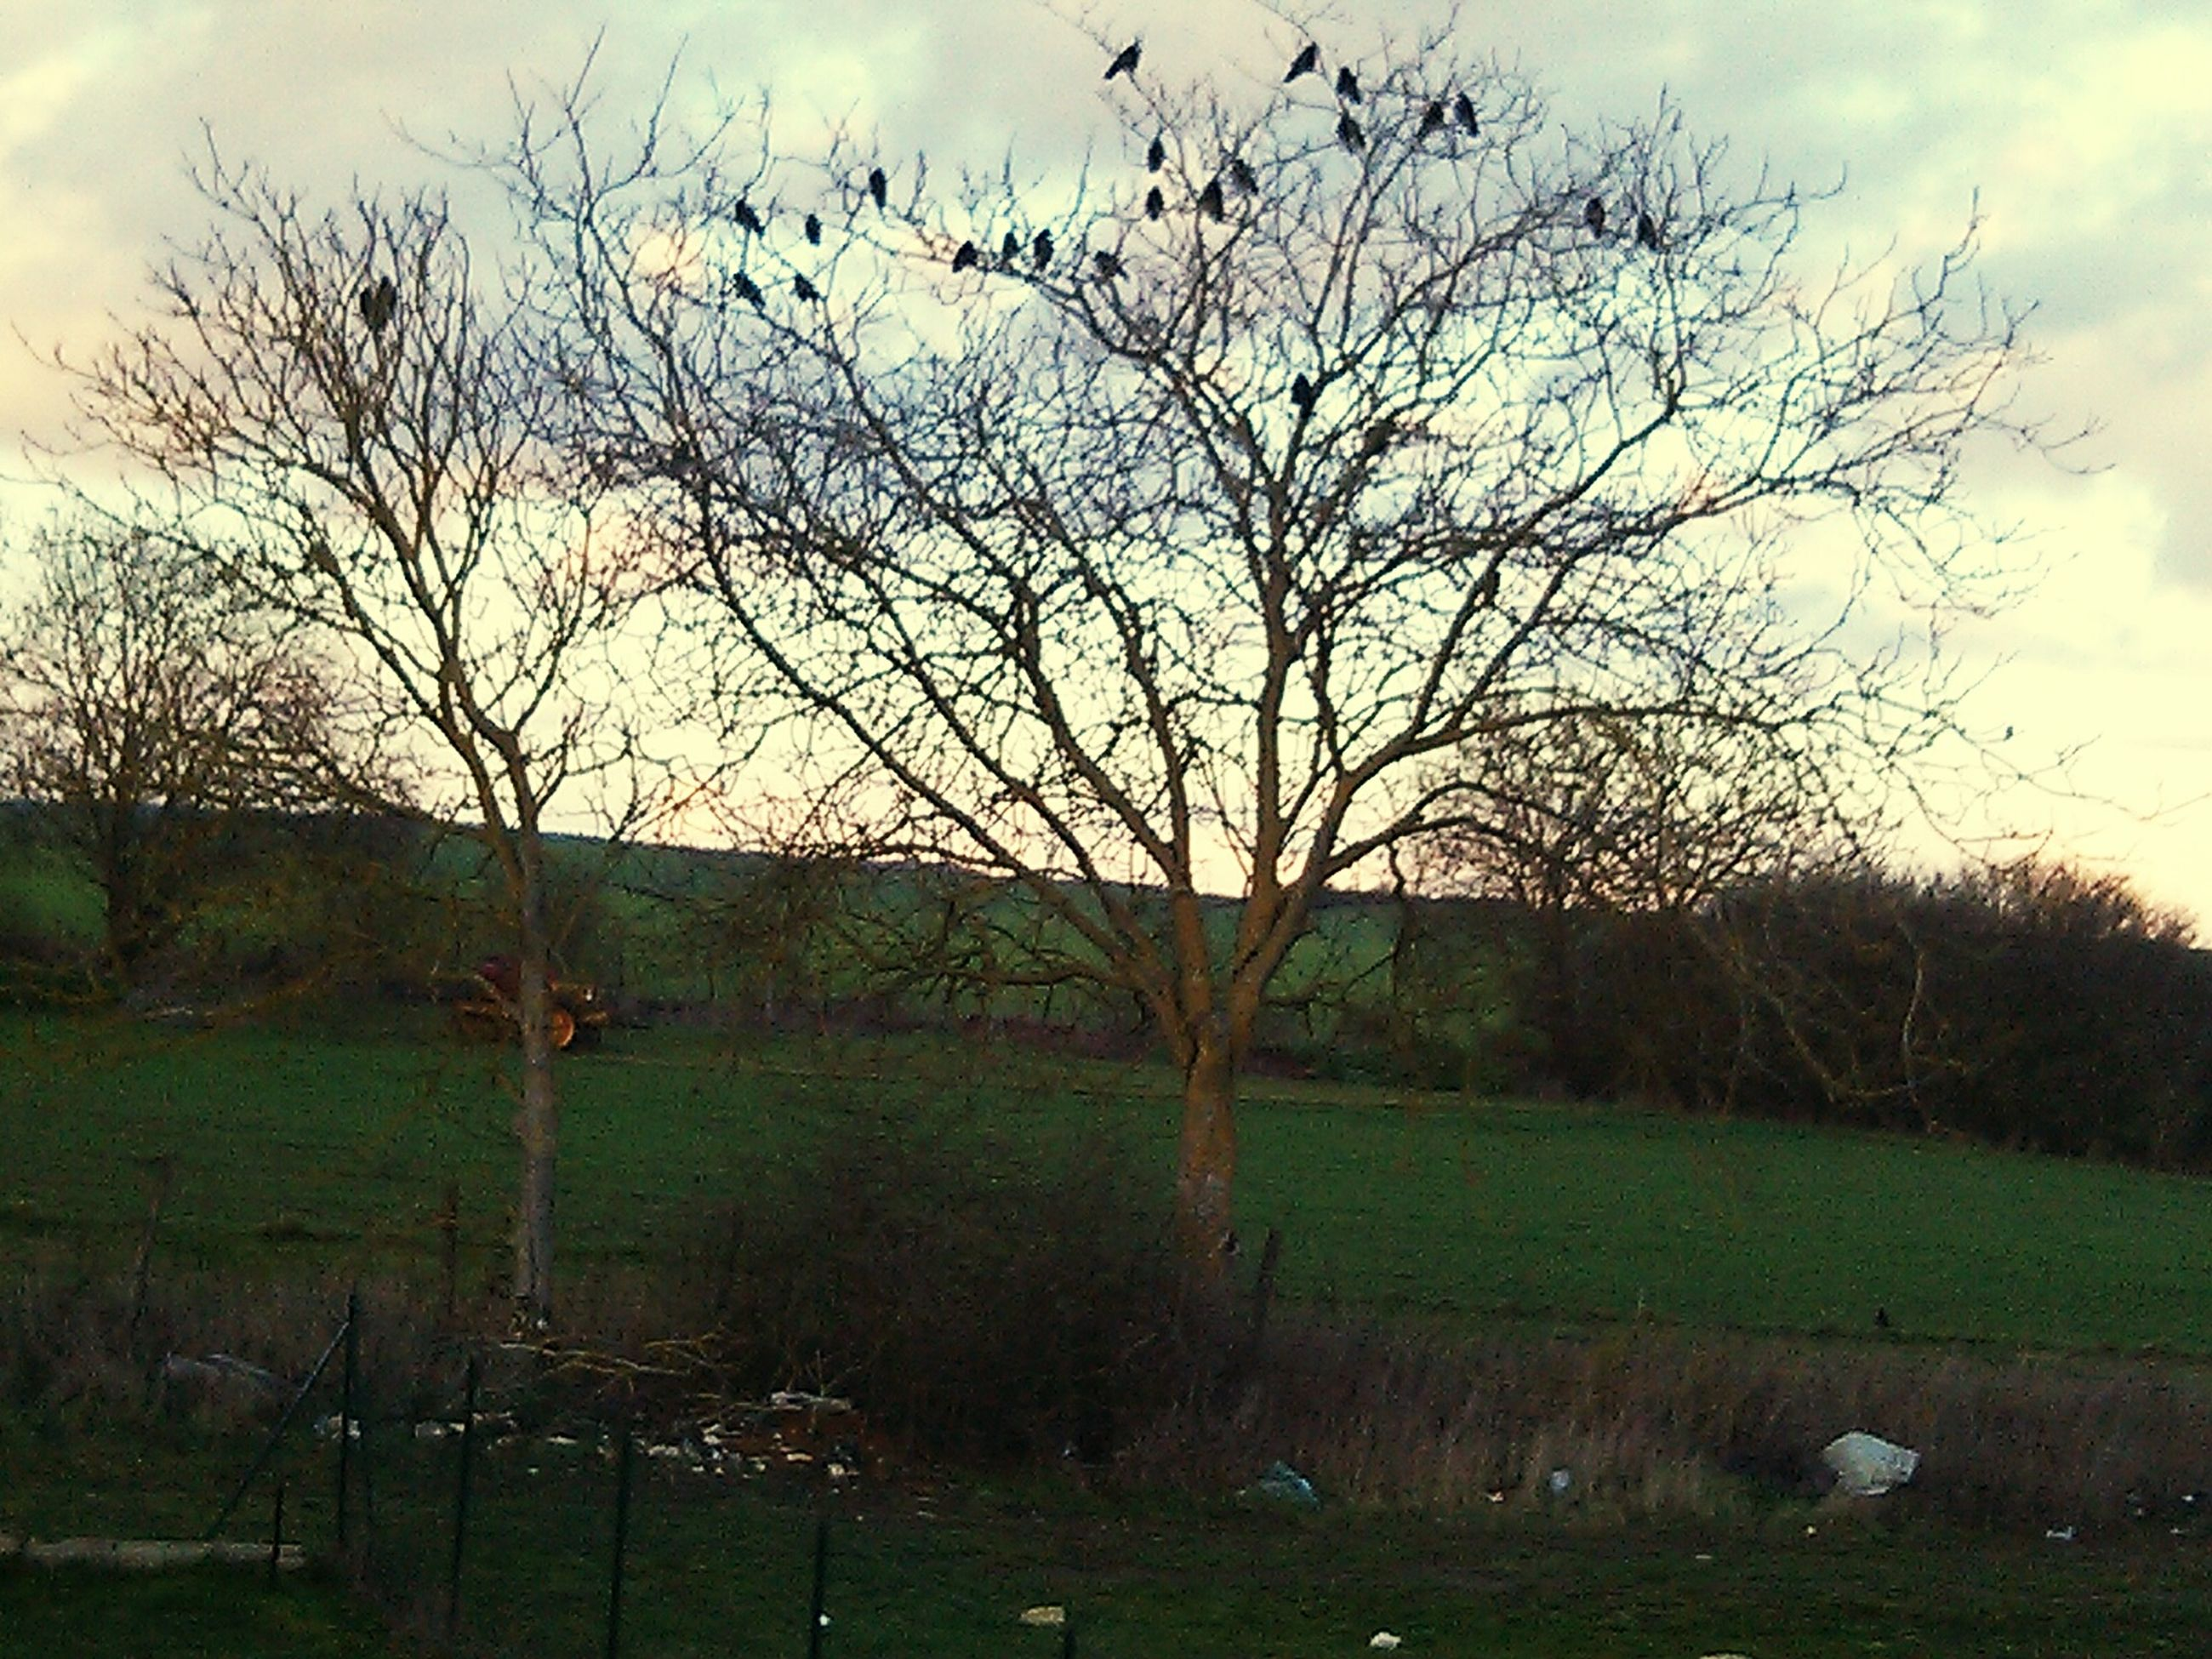 bare tree, tree, field, grass, sky, landscape, tranquility, fence, tranquil scene, branch, nature, grassy, scenics, beauty in nature, rural scene, cloud - sky, non-urban scene, growth, tree trunk, no people